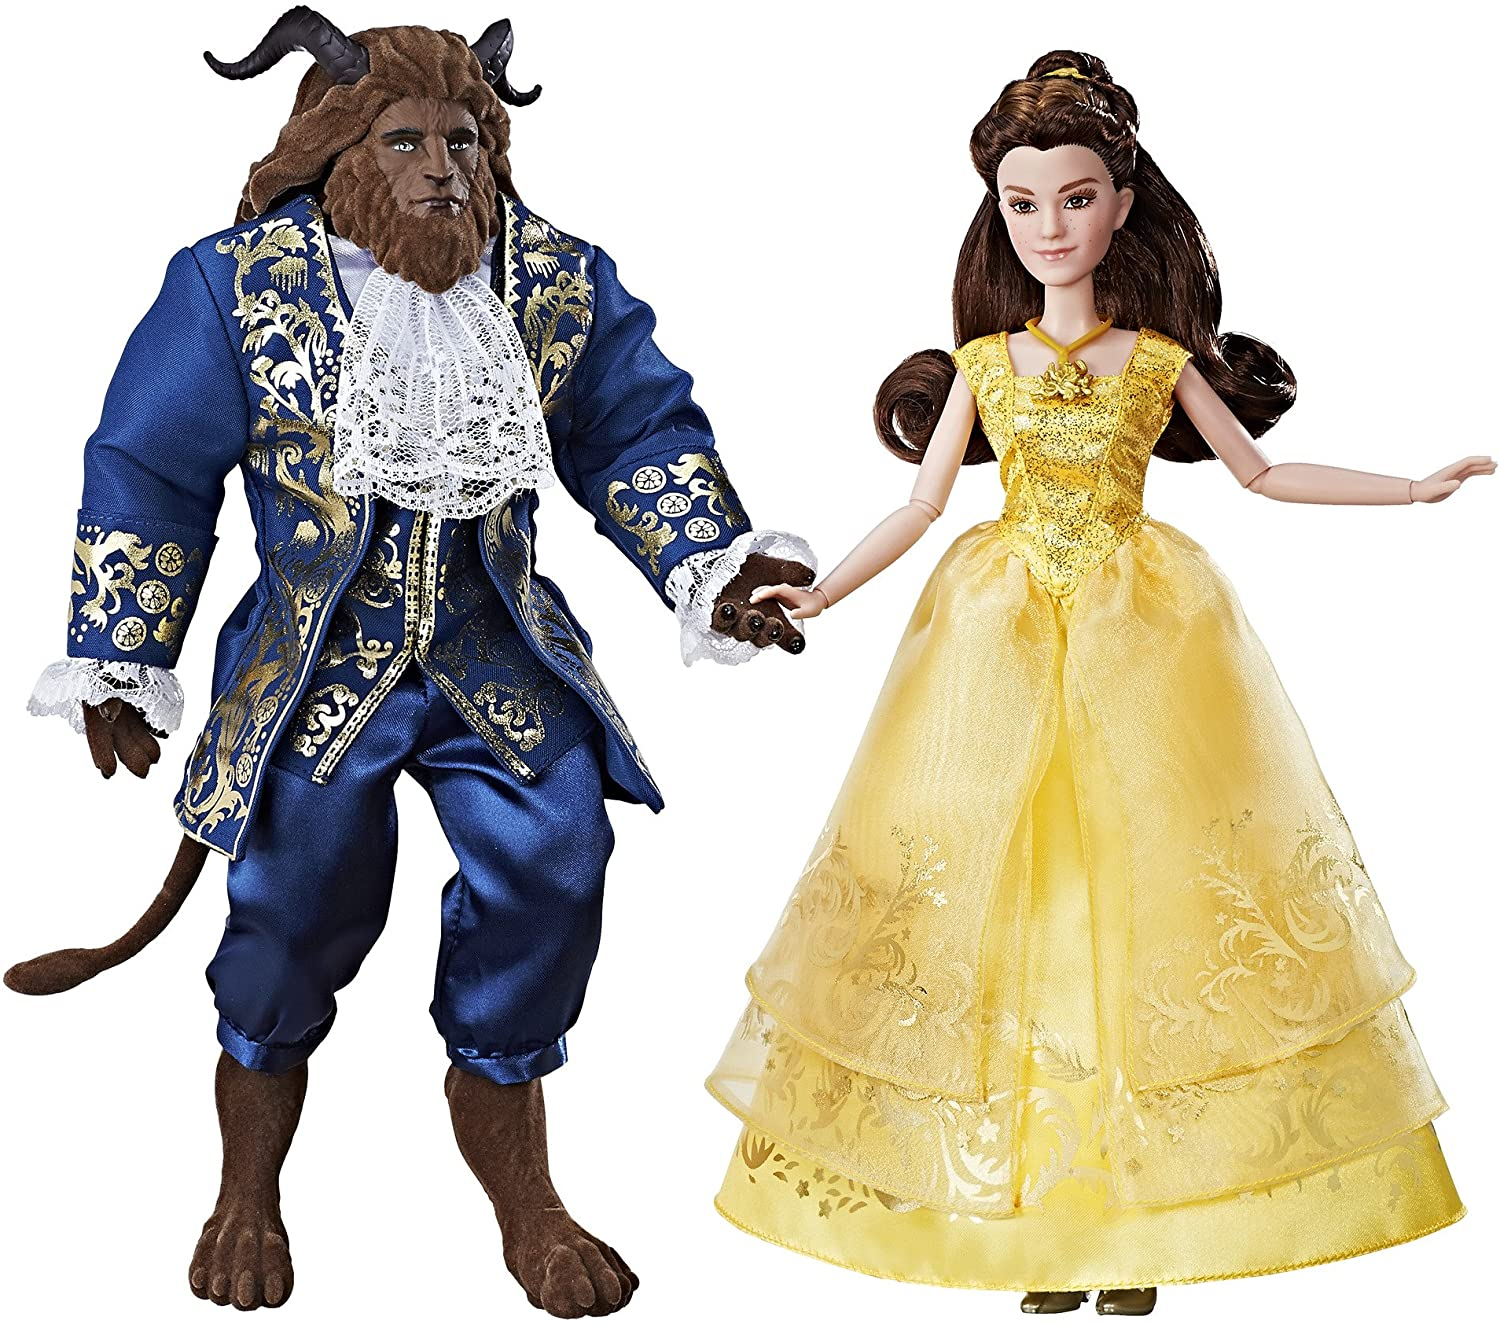 Amazon Com Disney Beauty And The Beast Grand Romance Inspired By Live Action Film Includes Posable Princess Belle And The Beast Includes Doll Dress Shoes Necklace Hairpiece And Beast Figure Toys